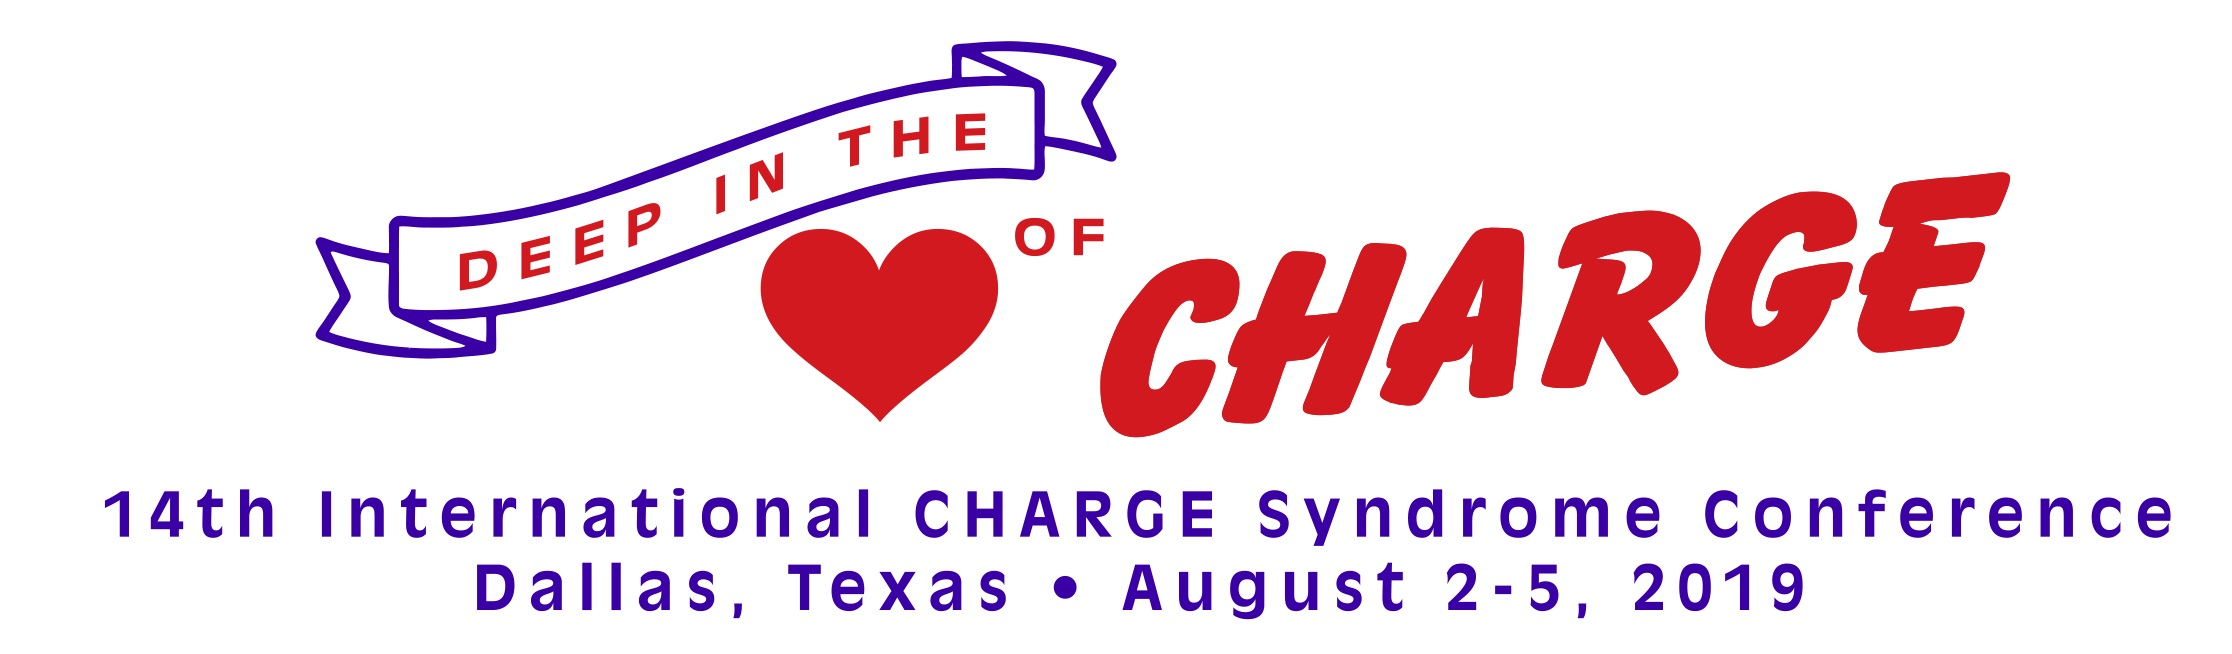 Deep in the heart of texas 14th international CHARGE syndrome conference Dallas Texas August 1-4, 2019